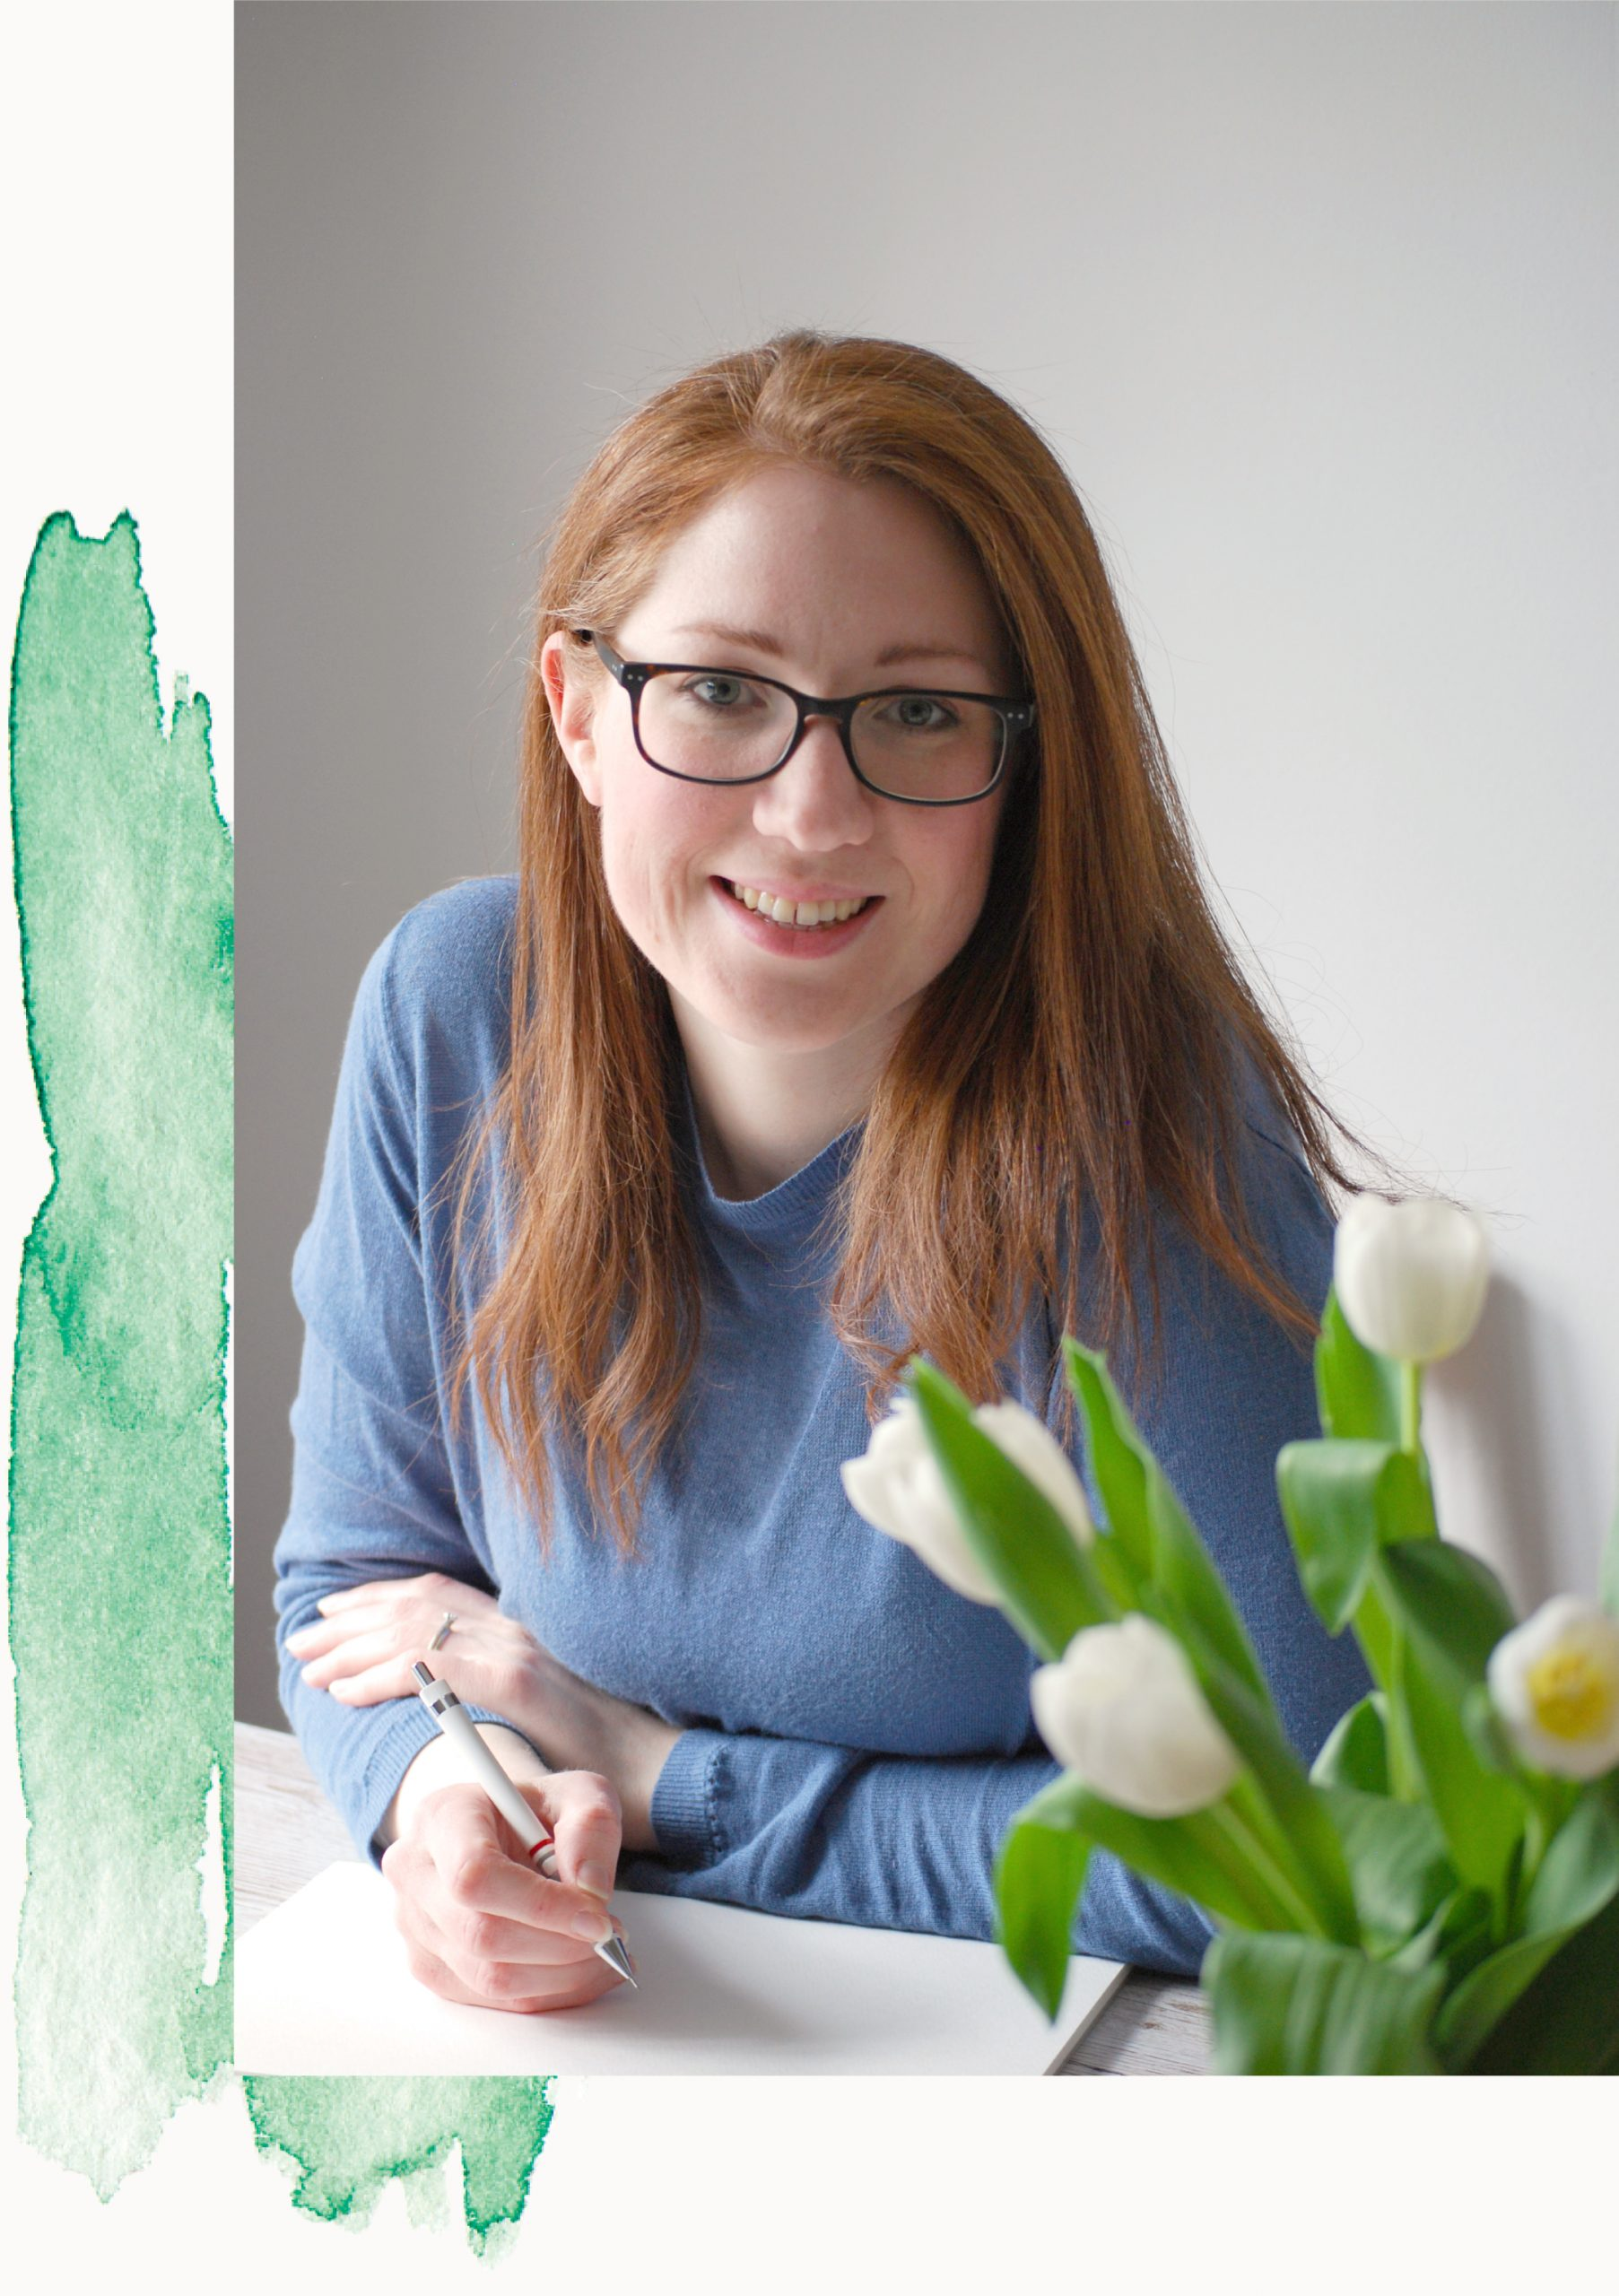 Kerri Awosile - artist, illustrator, writer, and designer in the UK - inspiring creativity for women in the UK through a blog, newsletter, products and creative art, illustration, writing and design services - sitting at desk with white tulips